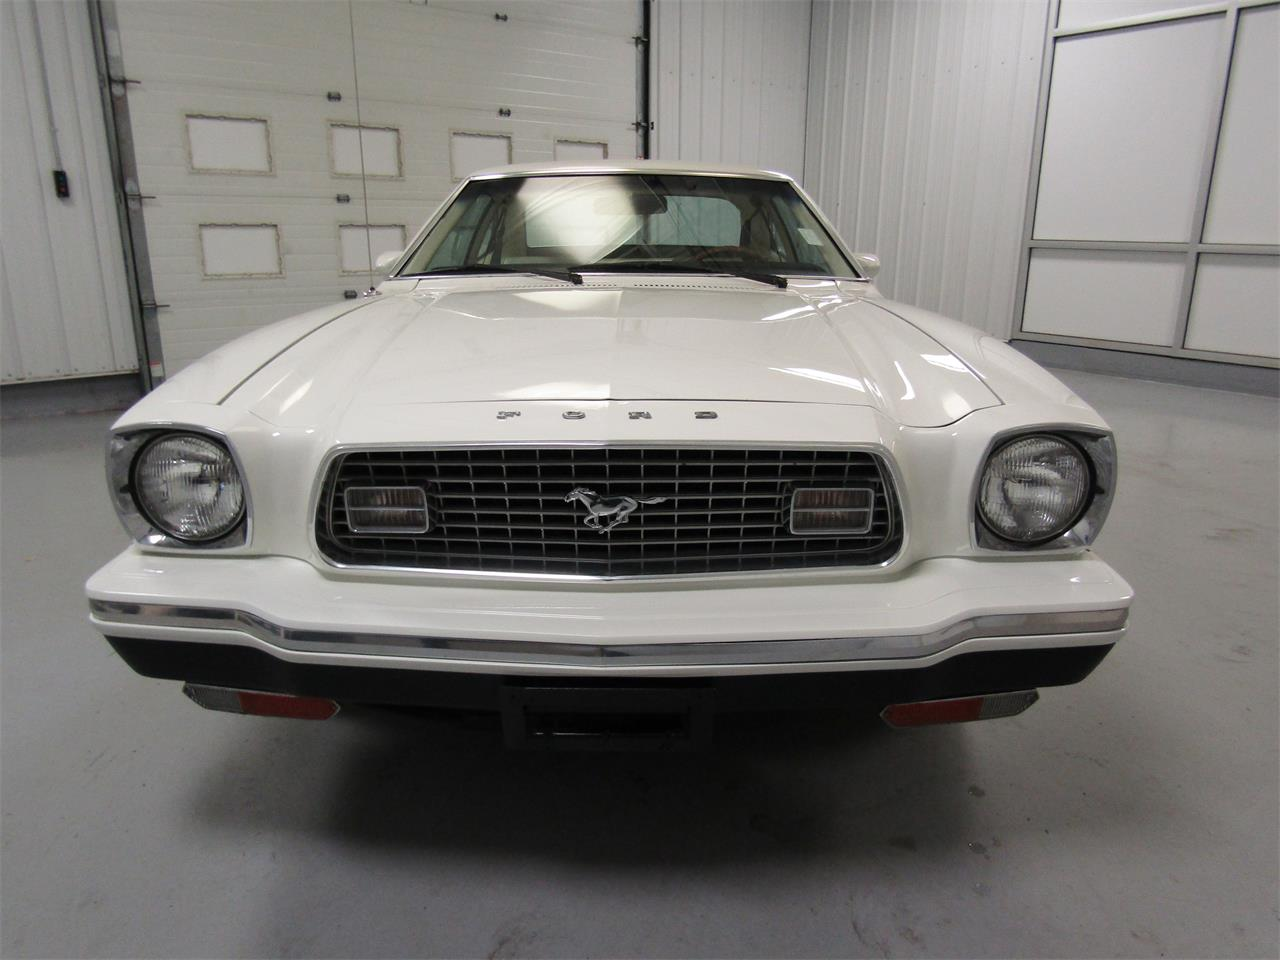 1976 Ford Mustang for sale in Christiansburg, VA – photo 4